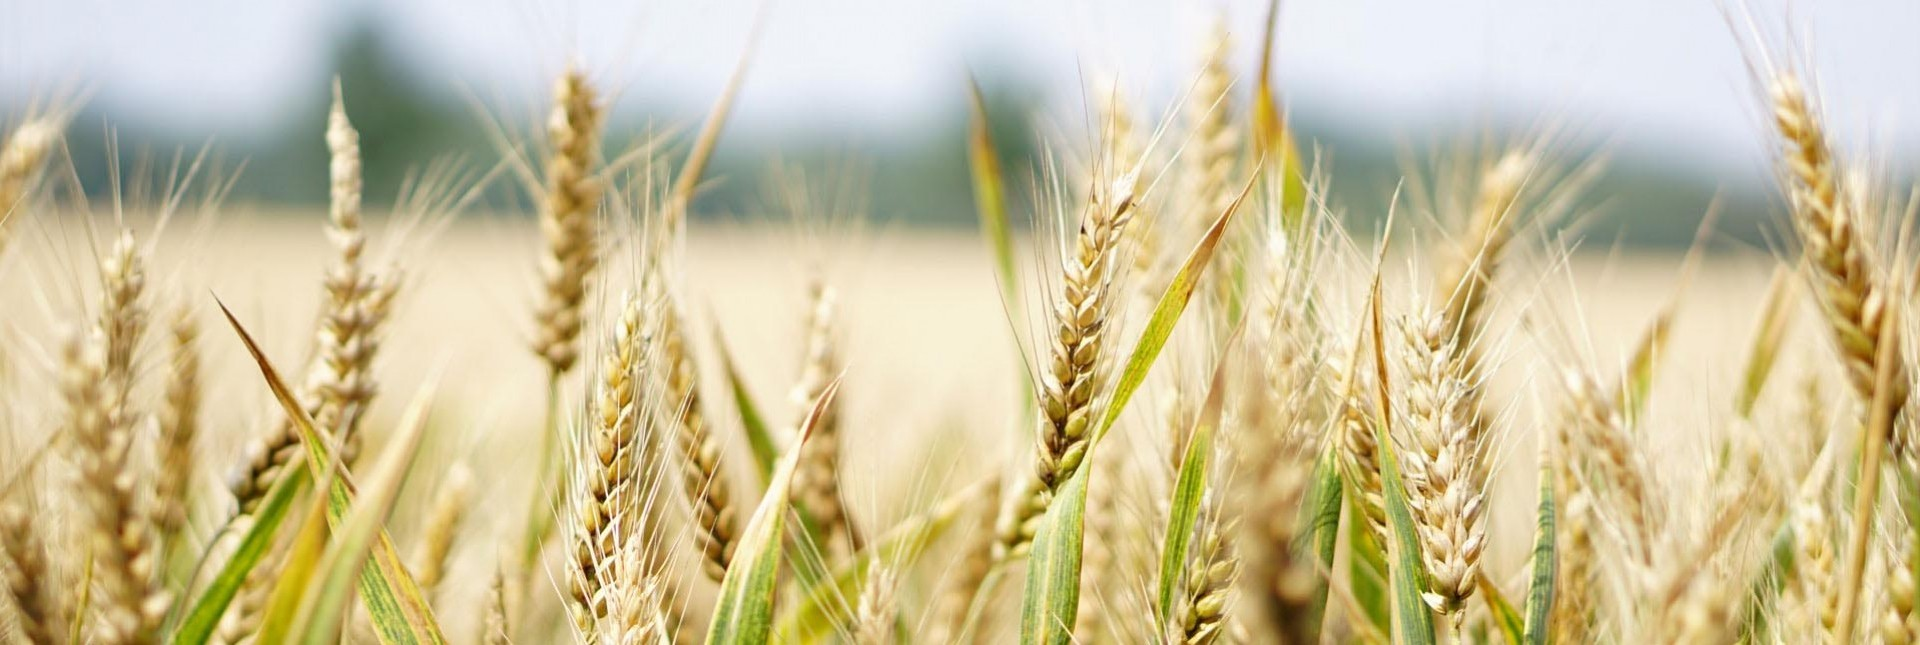 The Great Debate: Yes GMO or No GMO